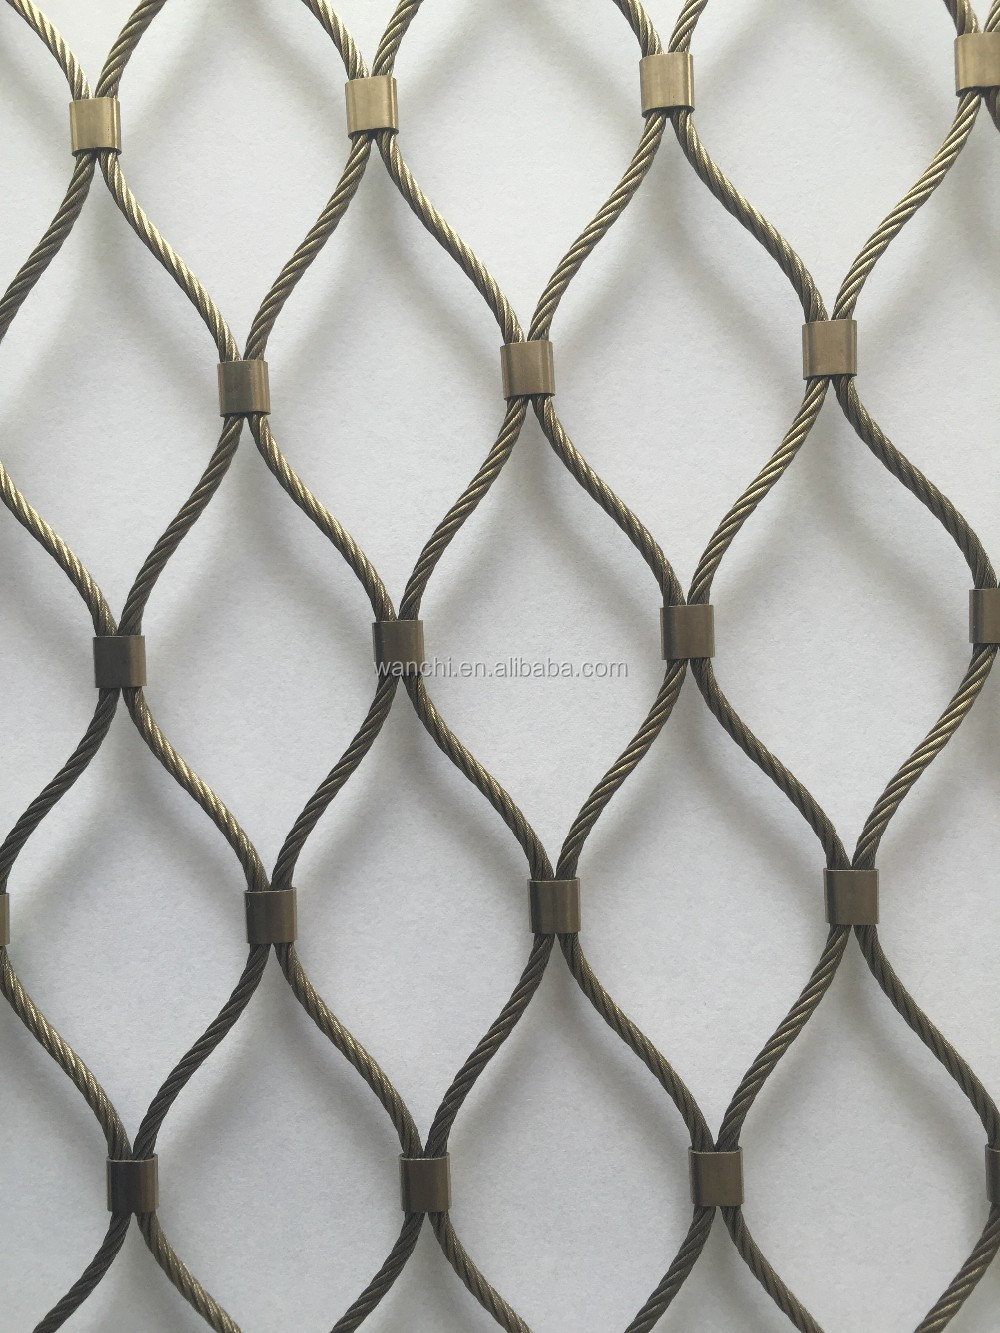 ss 1-6mm metal dimond rope mesh netting/zoo animal wire cages mesh(factory price)